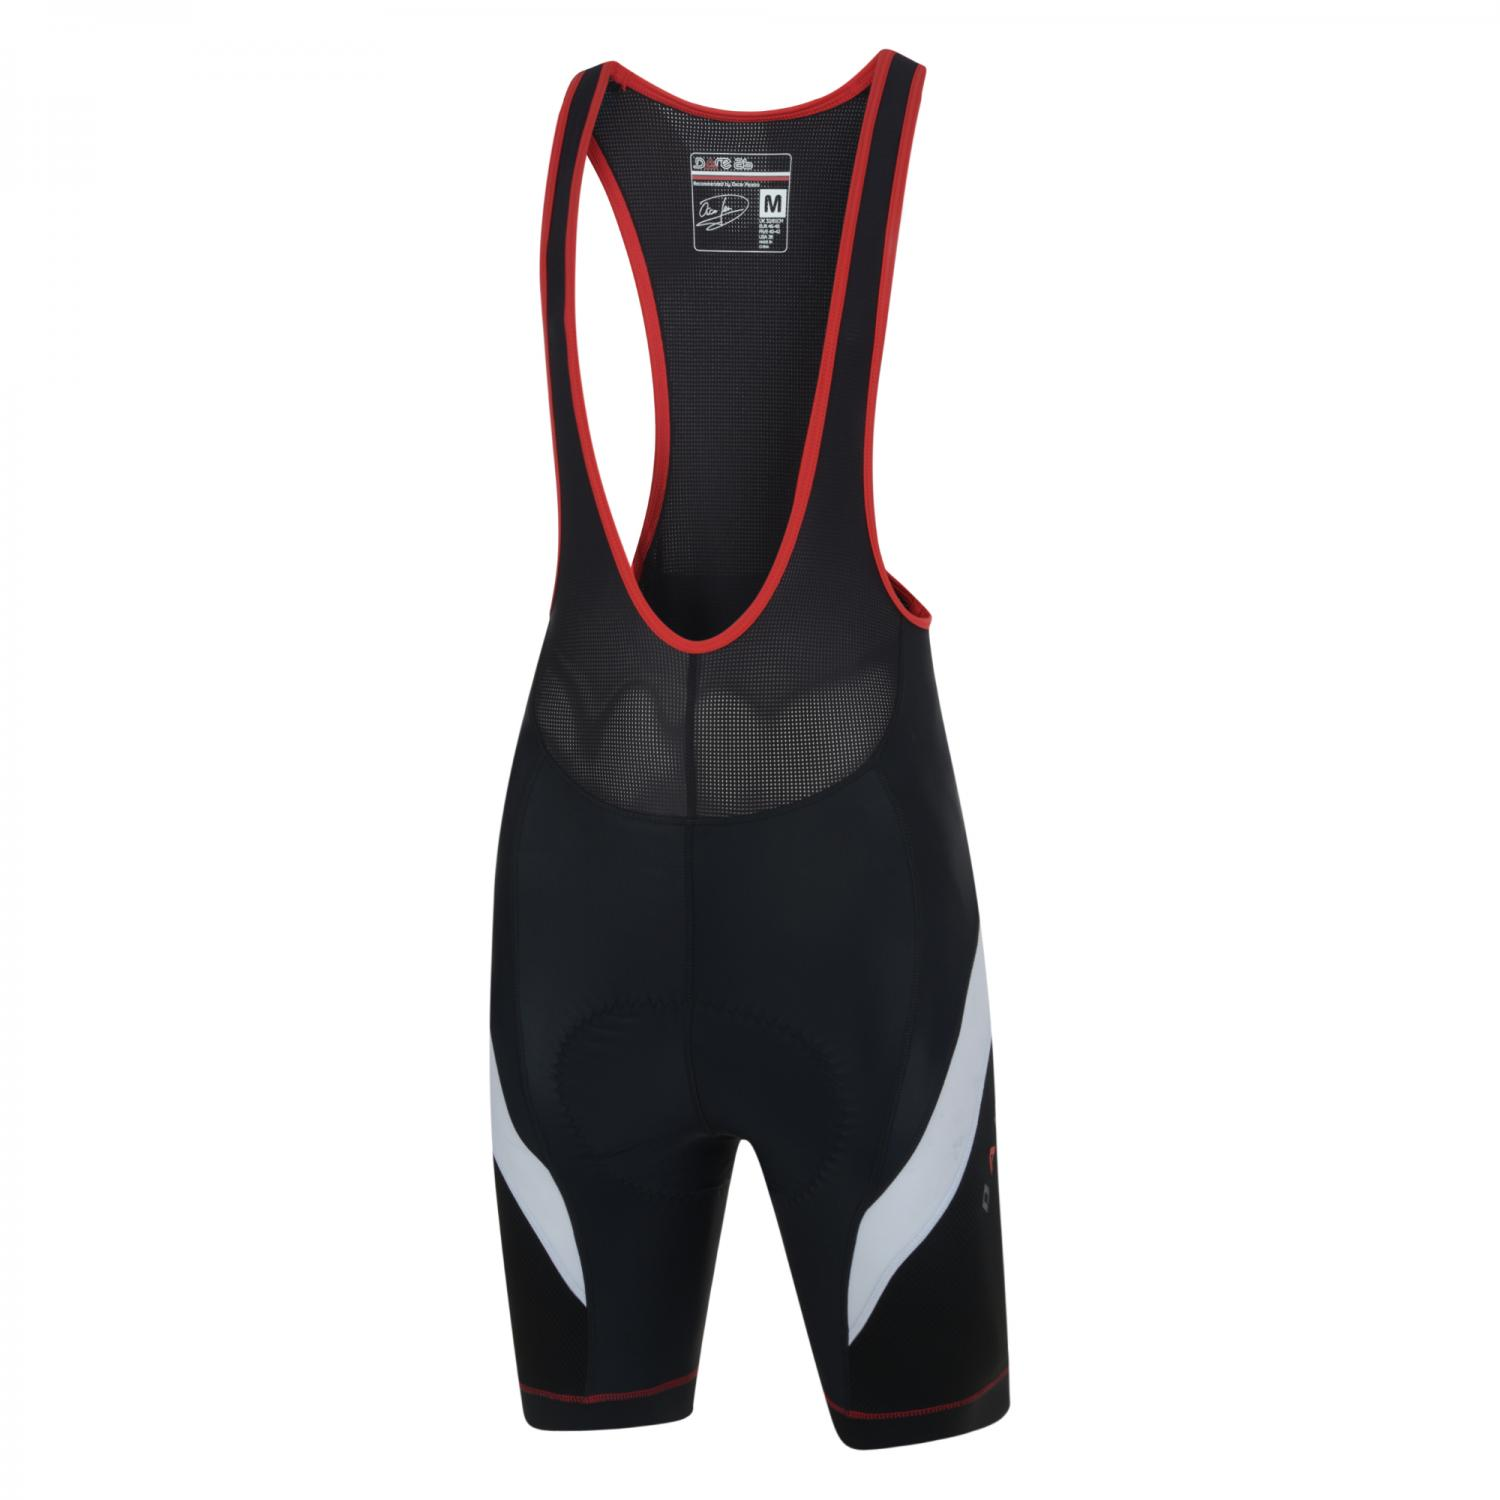 AEP Stage Race Bibbed Cycle Short Black   Fiery Red